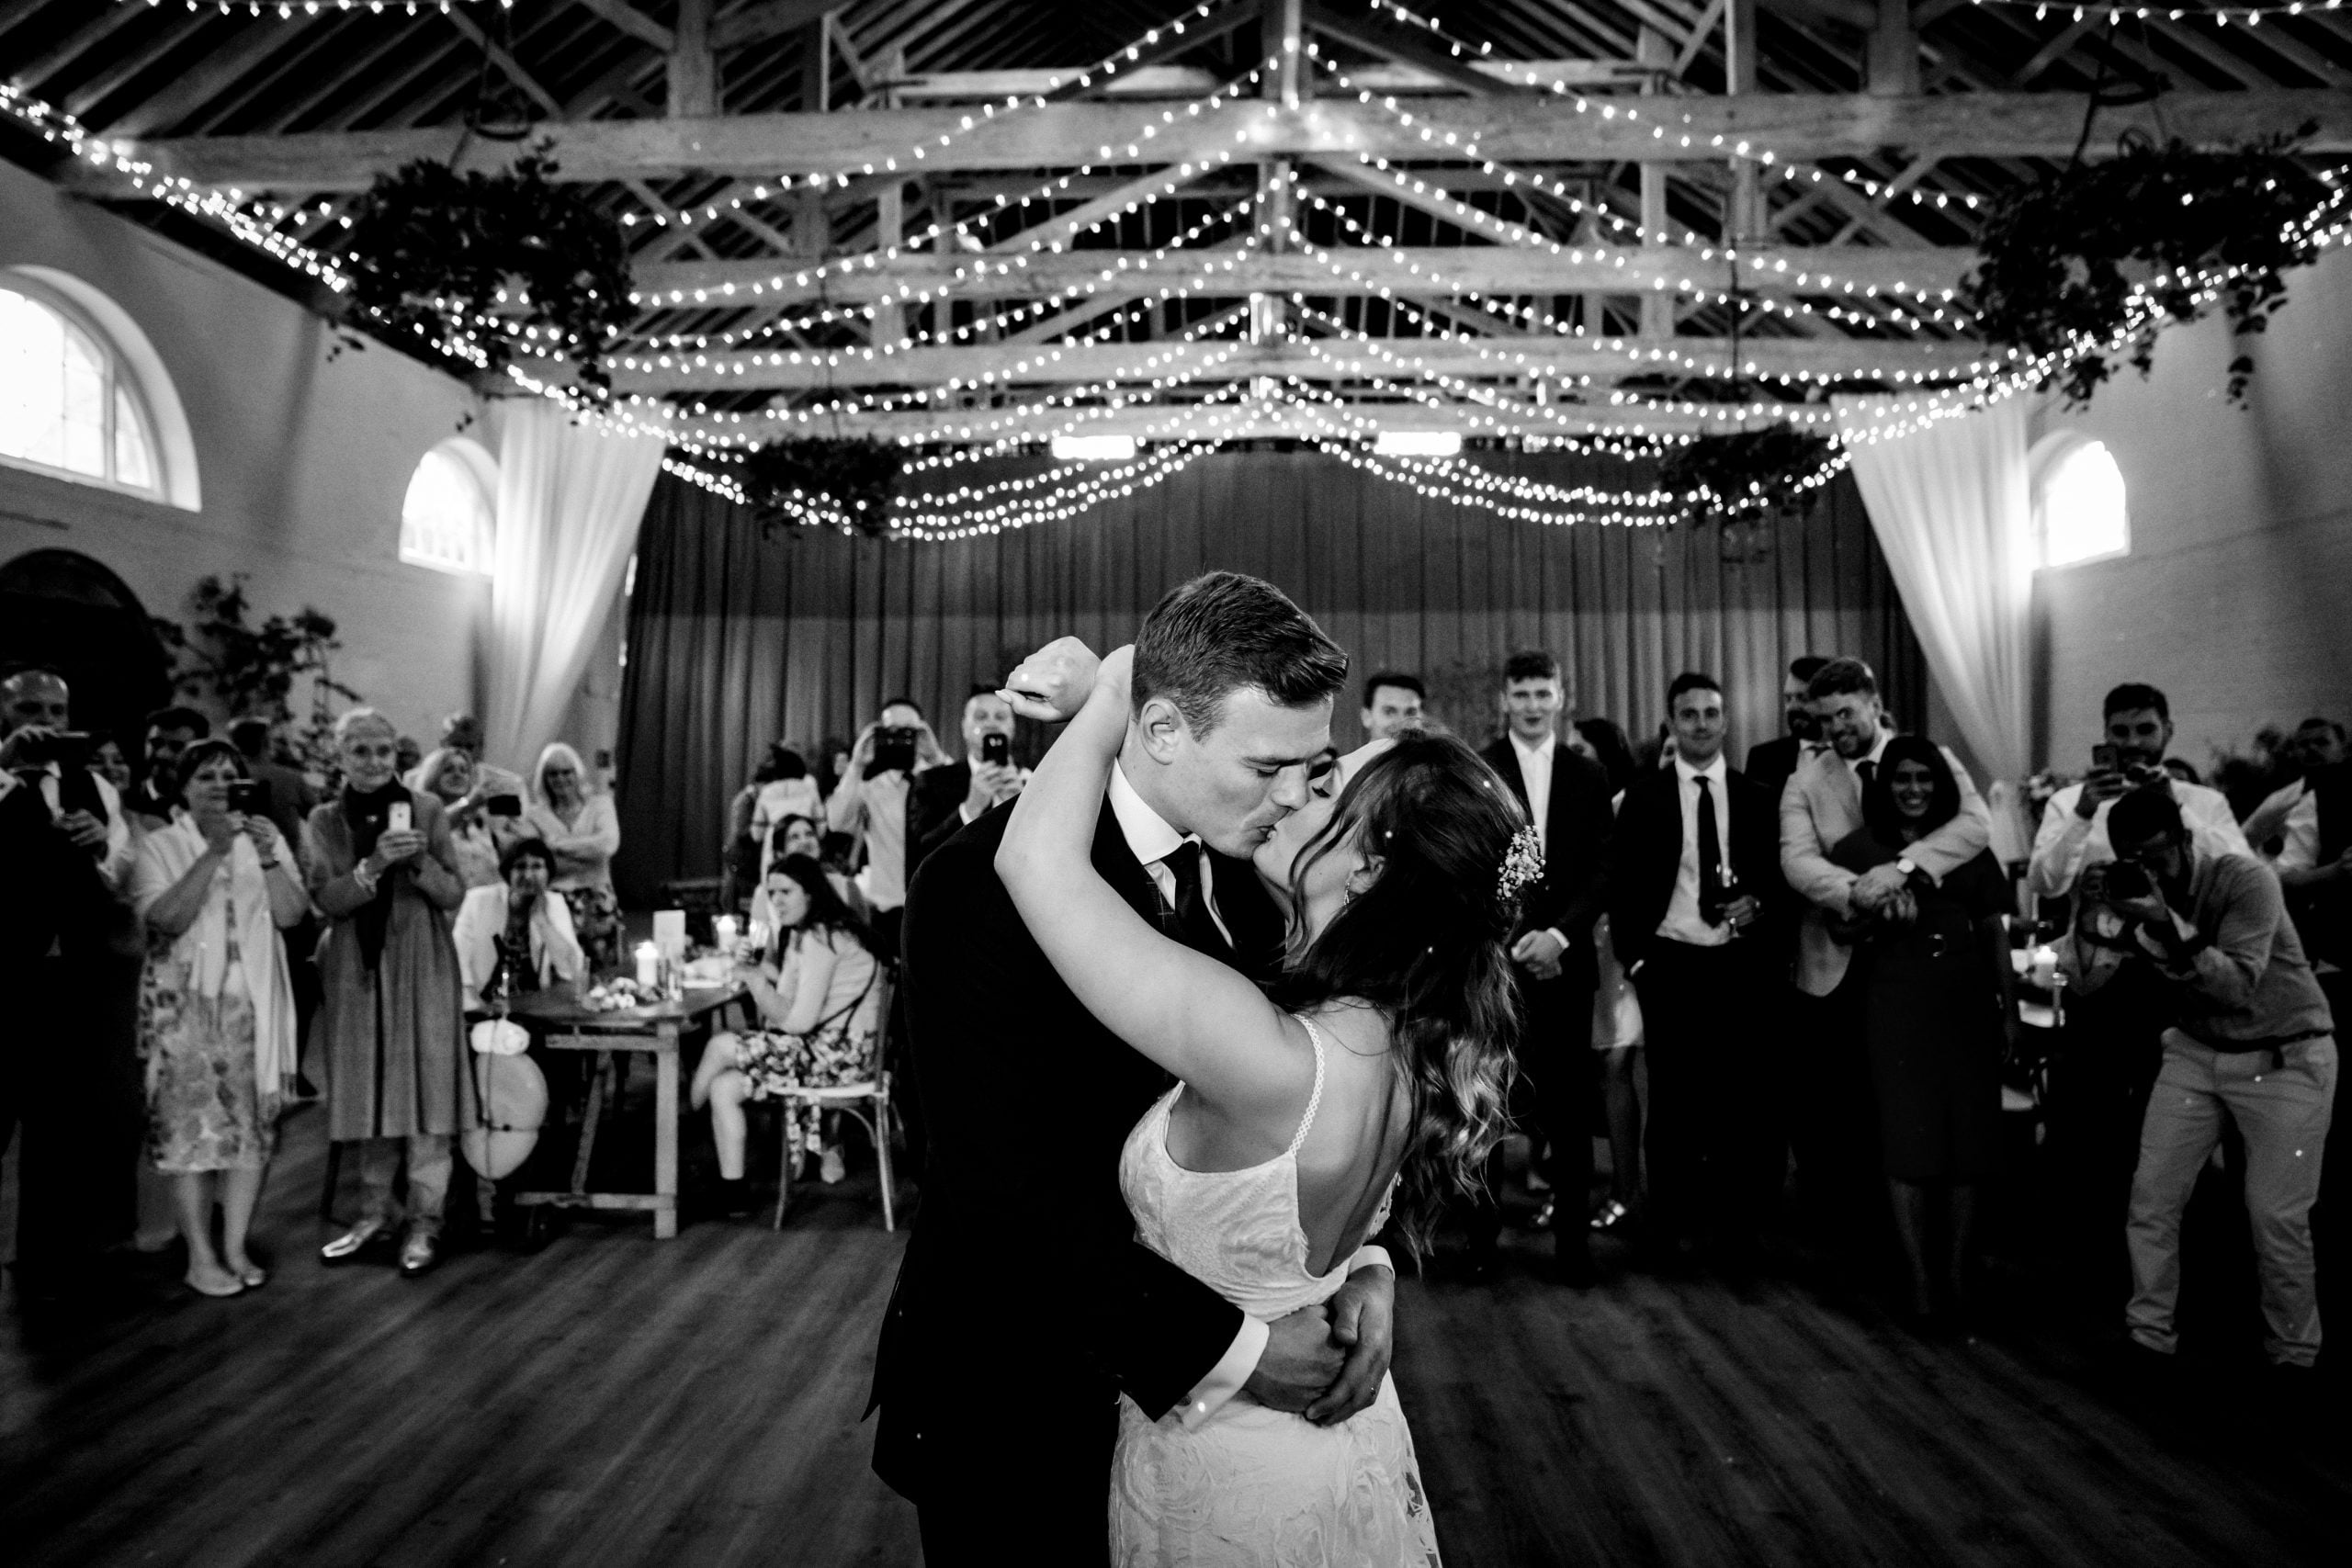 Wedding Photographers – Our pick of the very best